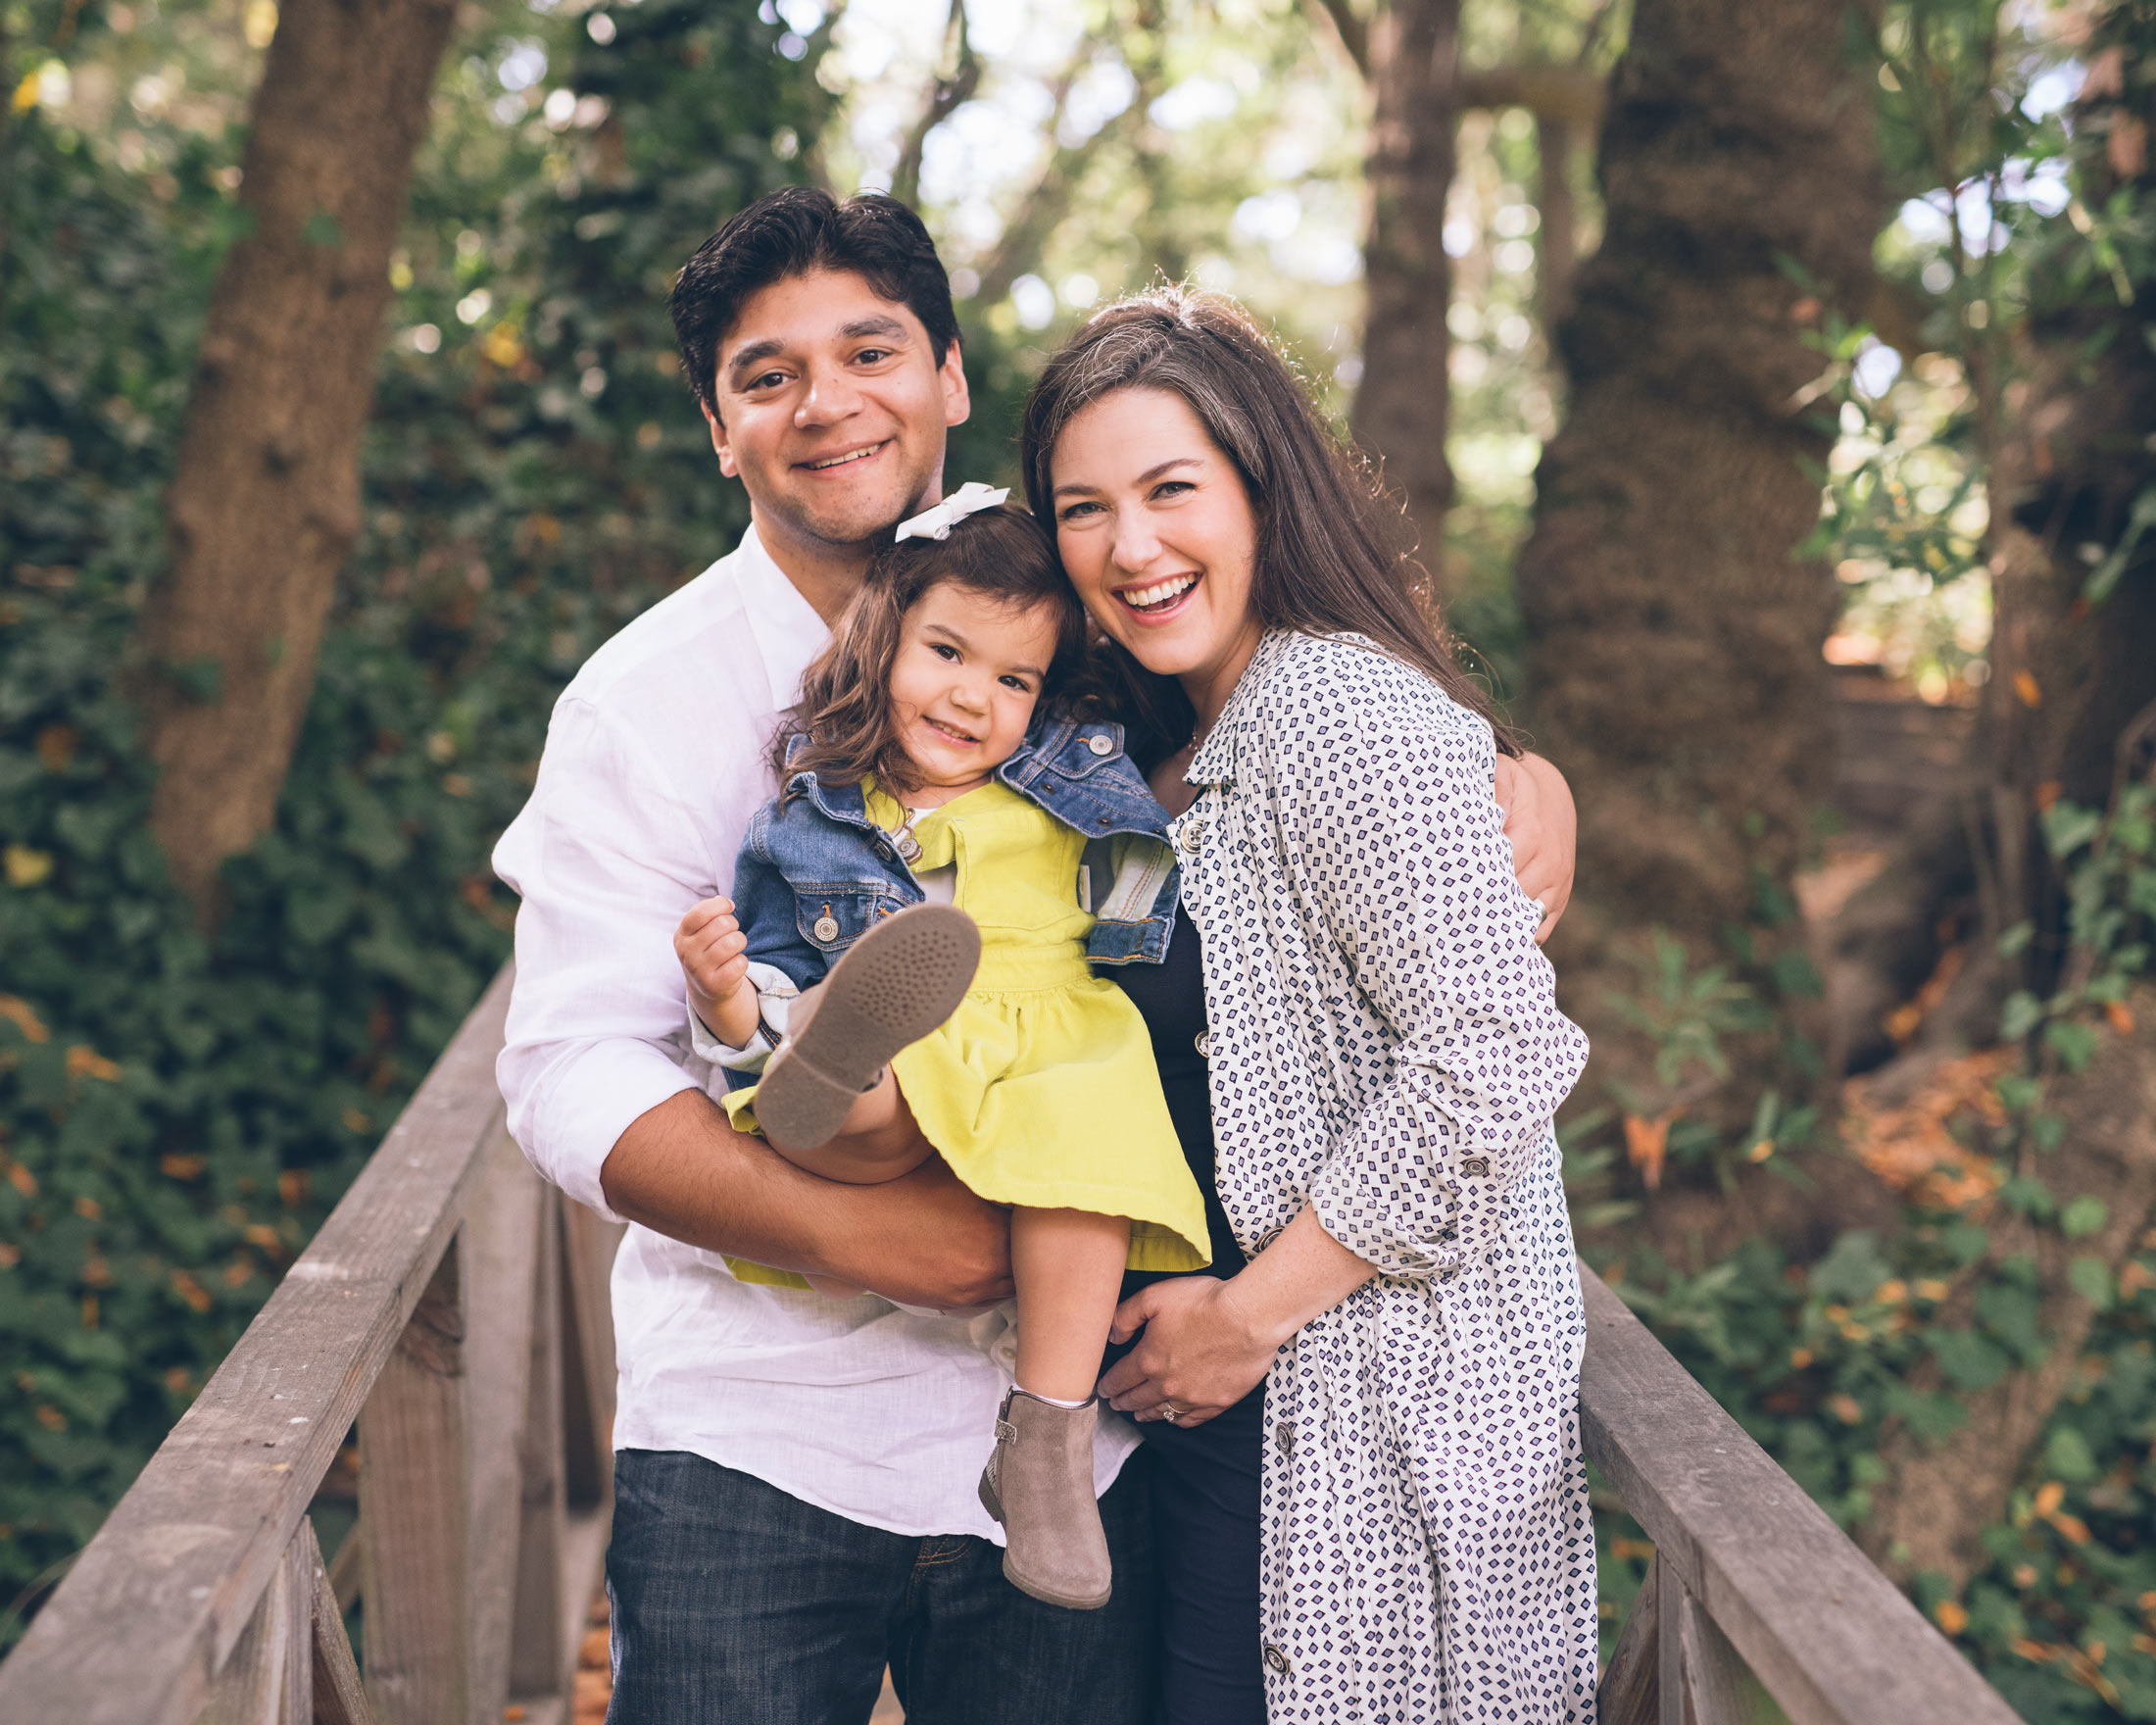 family-portrait-berkeley-photographer.jpg